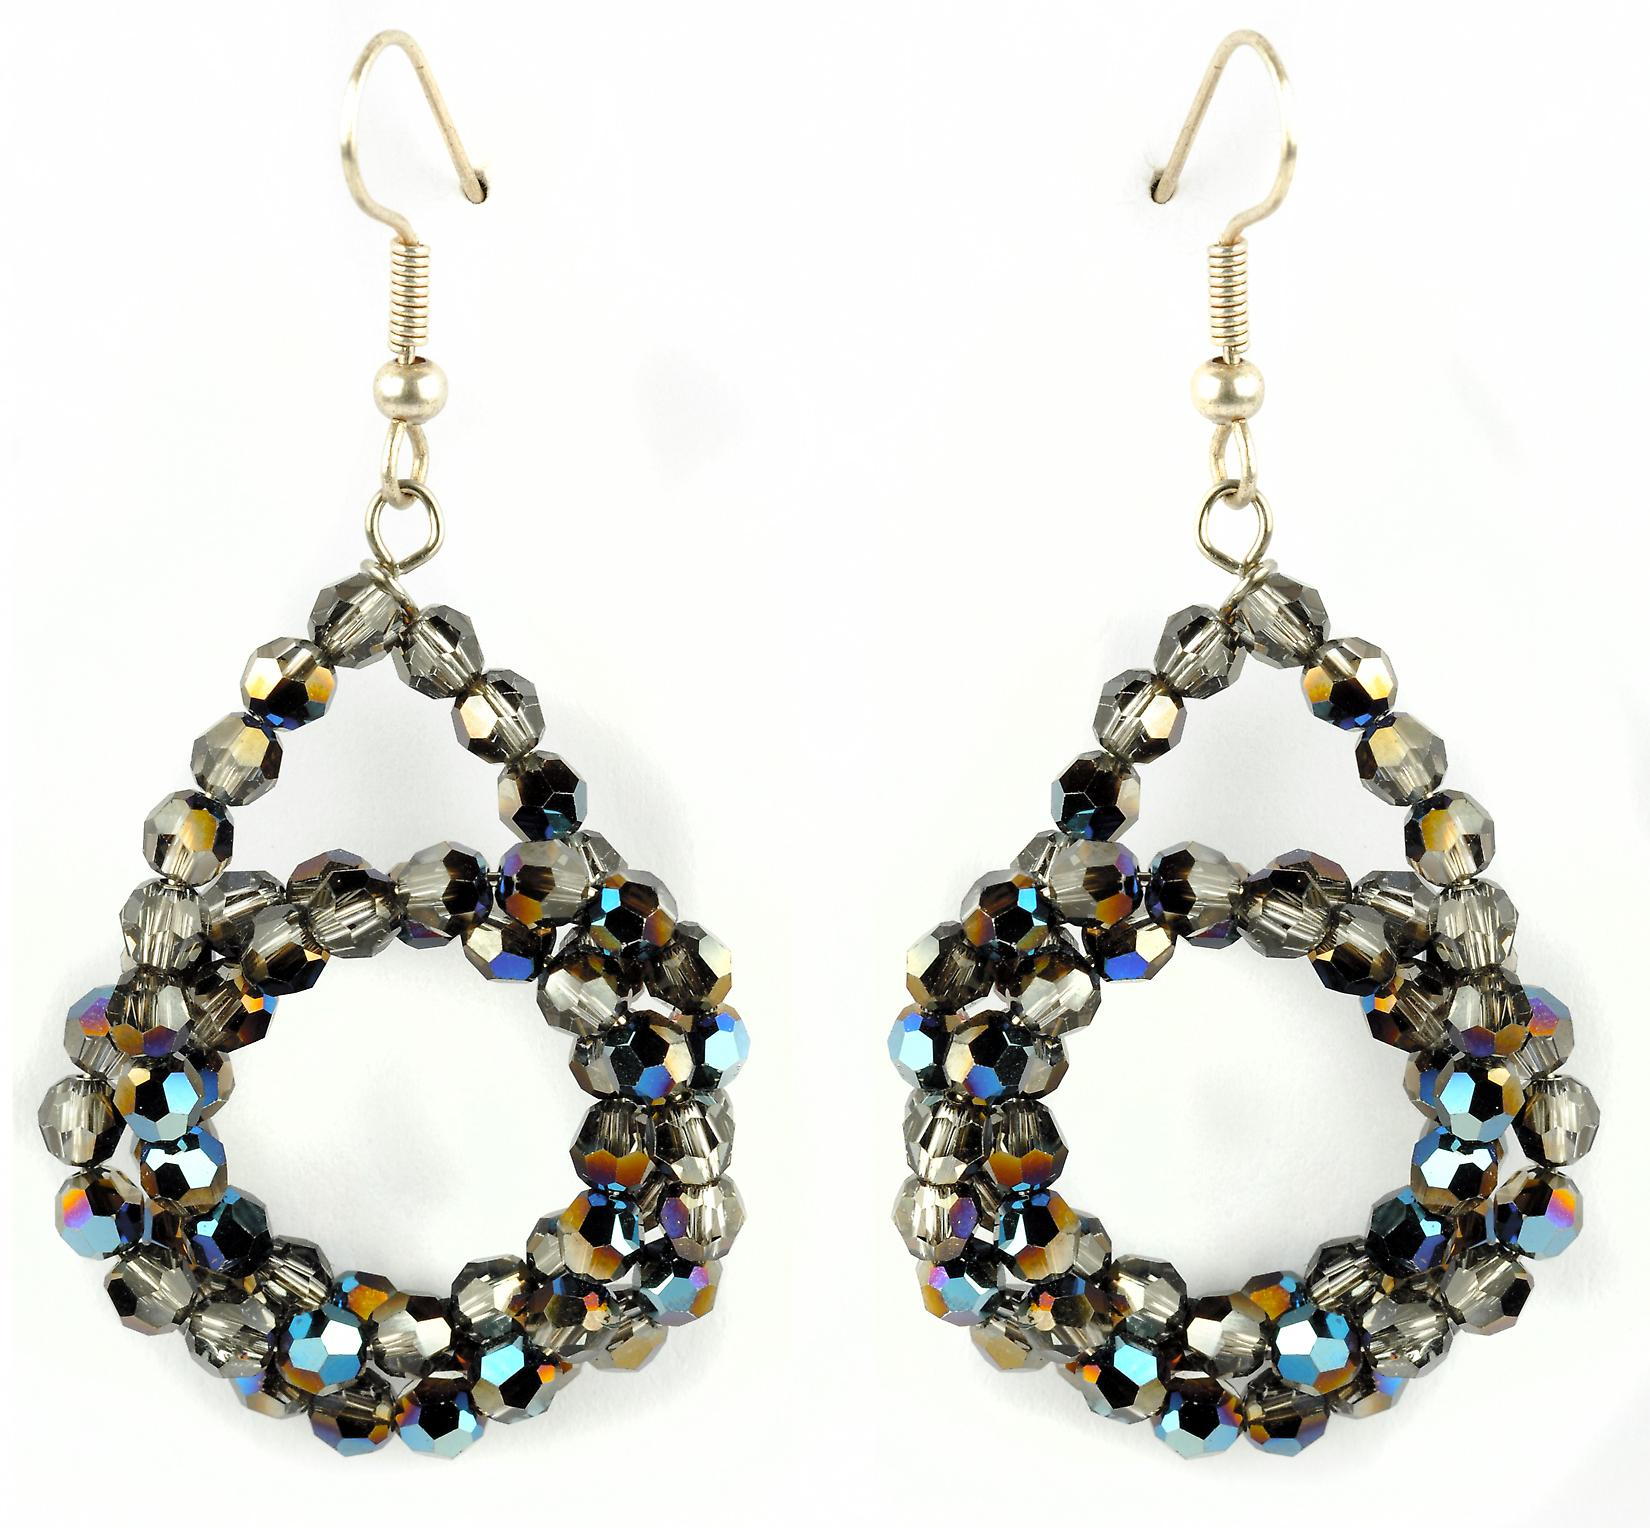 Waooh - Fashion Jewellery - WJ0746 - On Earrings with Swarovski Strass Silver Iridium - Frame Color Silver